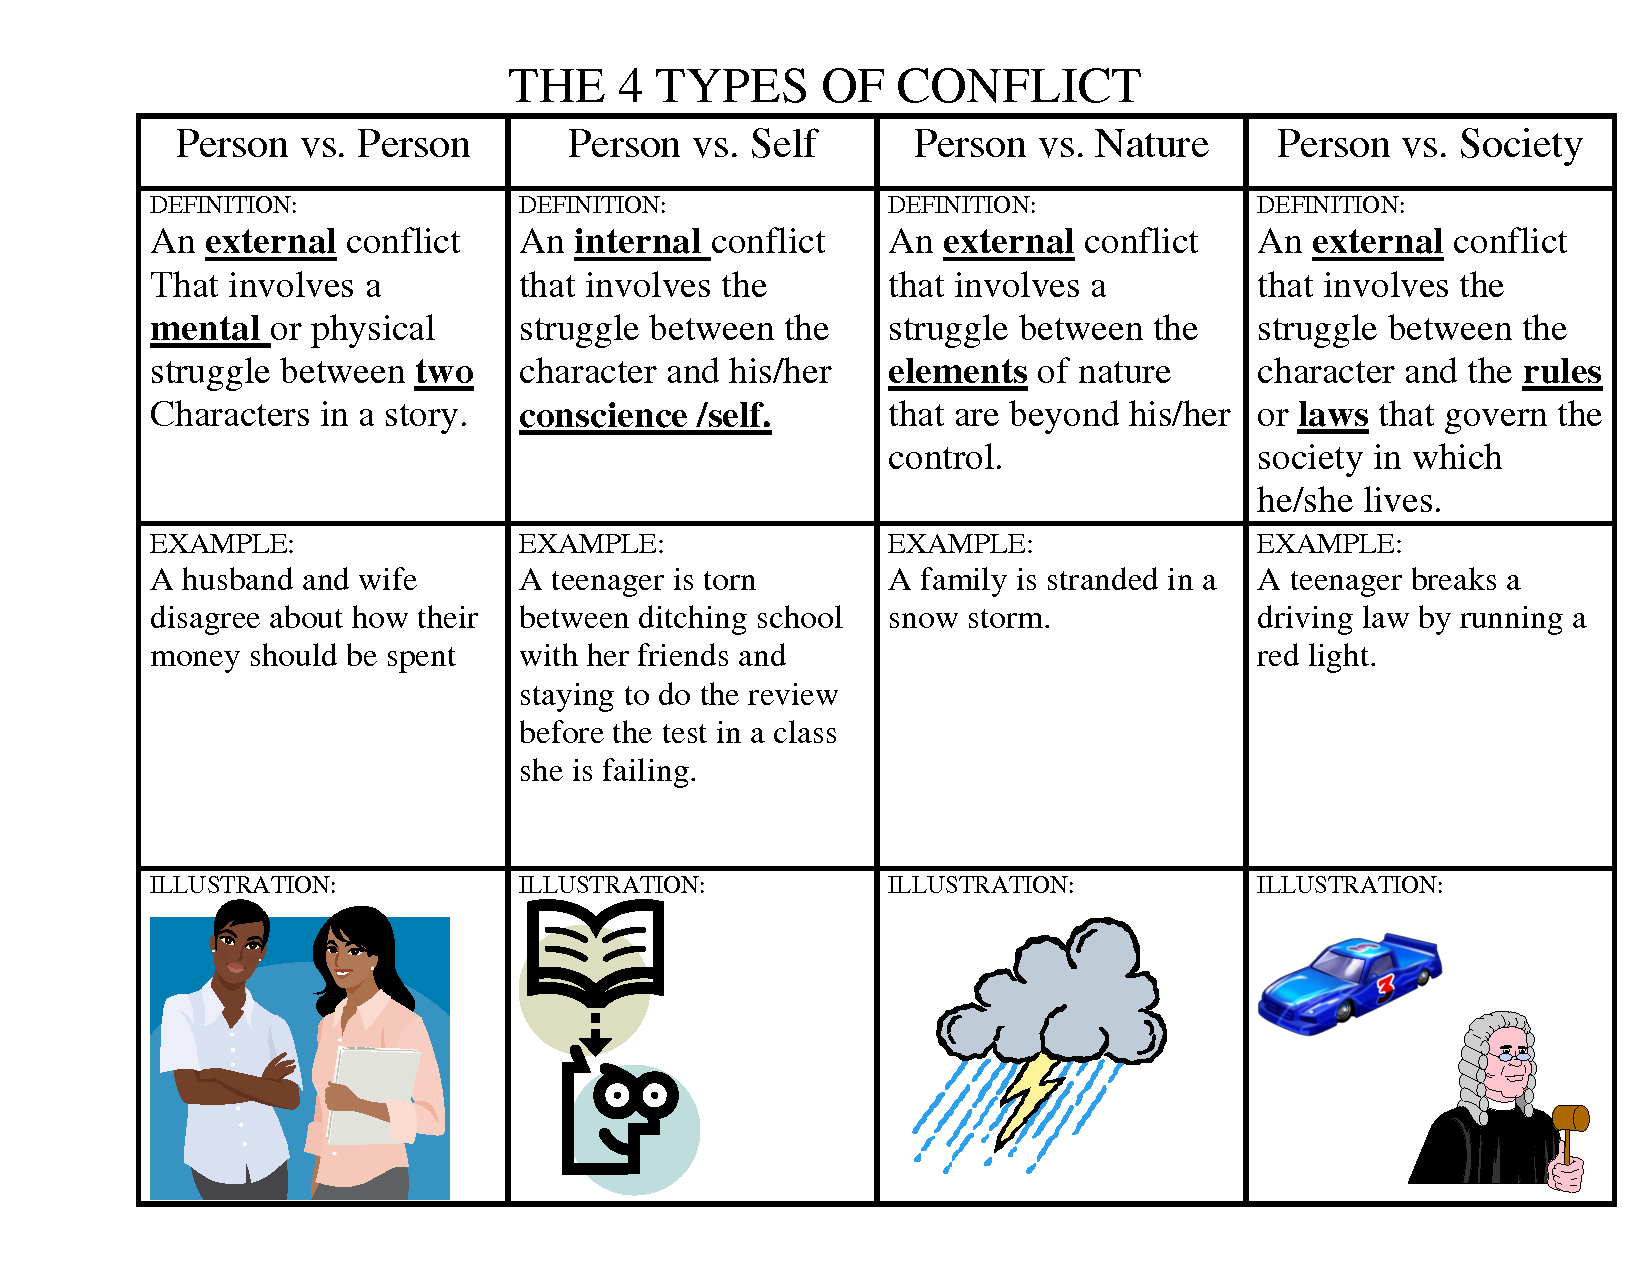 small resolution of 2010 THE 4 TYPES OF CONFLICT GRAPHIC ORGANIZER   Types of conflict